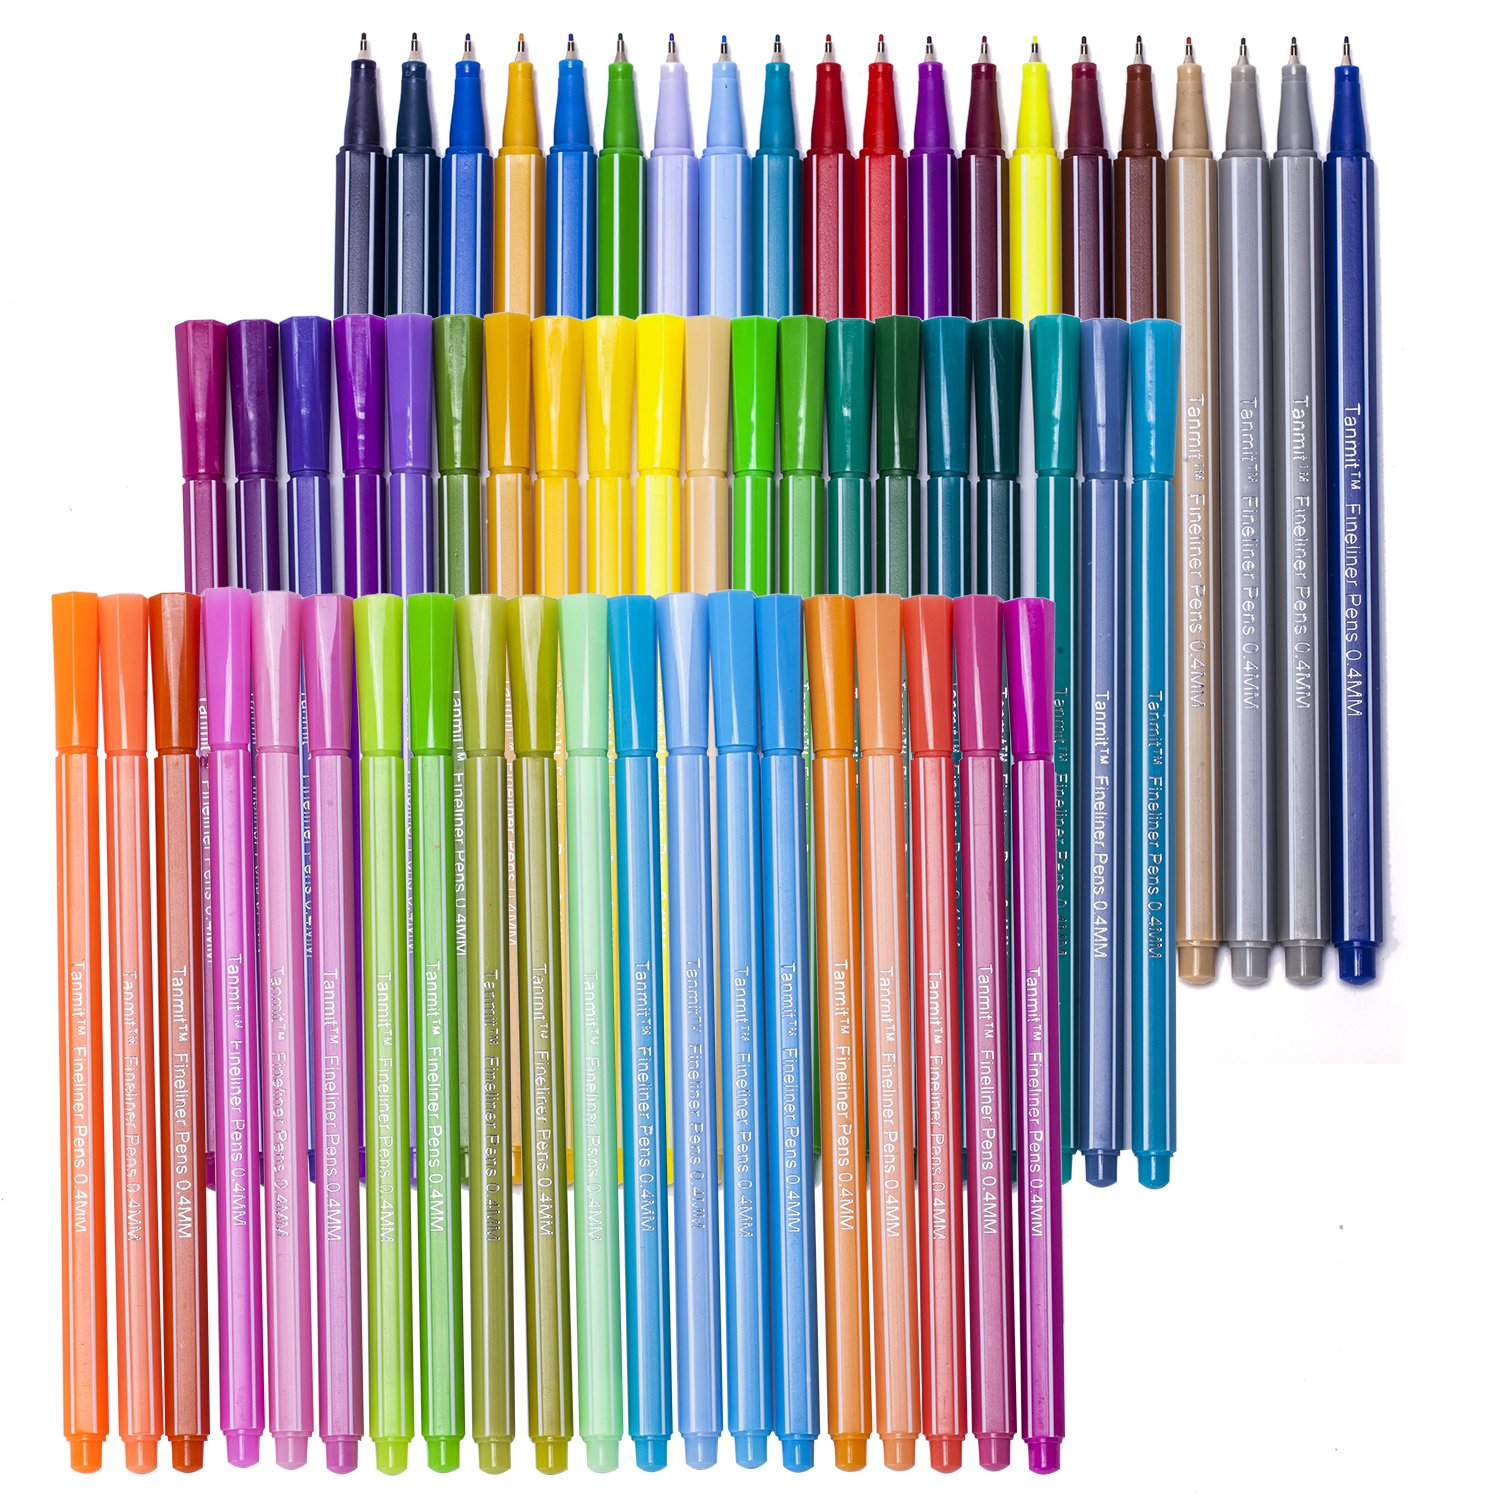 amazoncom tanmit 60 fineliner coloring pens set 04mm ultra fine tip unique colored pen porous fine point markers perfect for adult coloring books